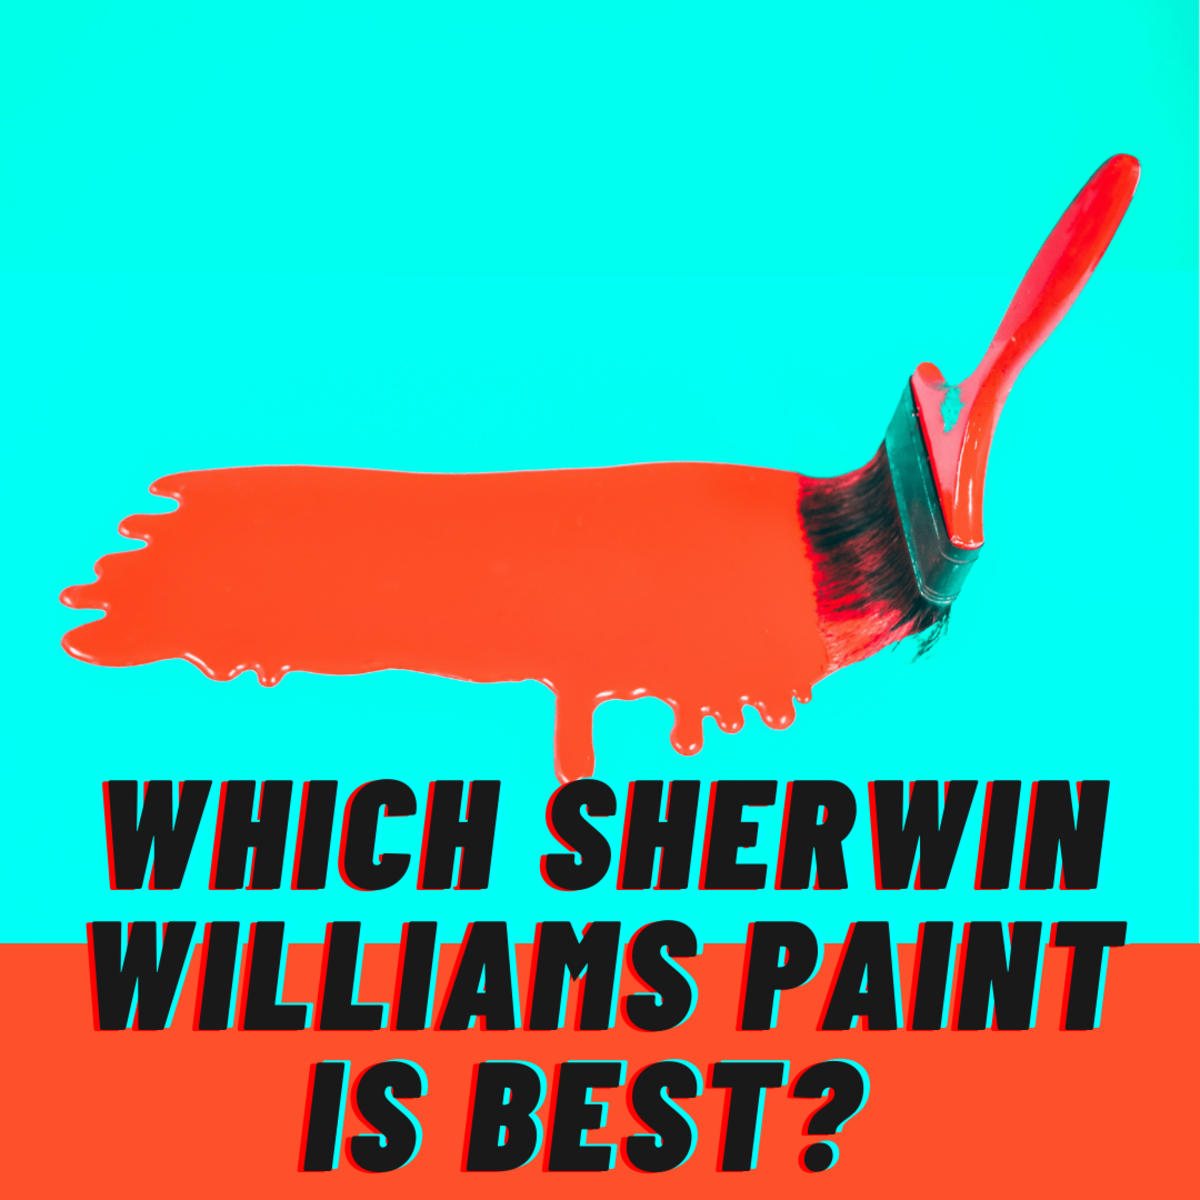 Which Sherwin Williams Paint Is Best?